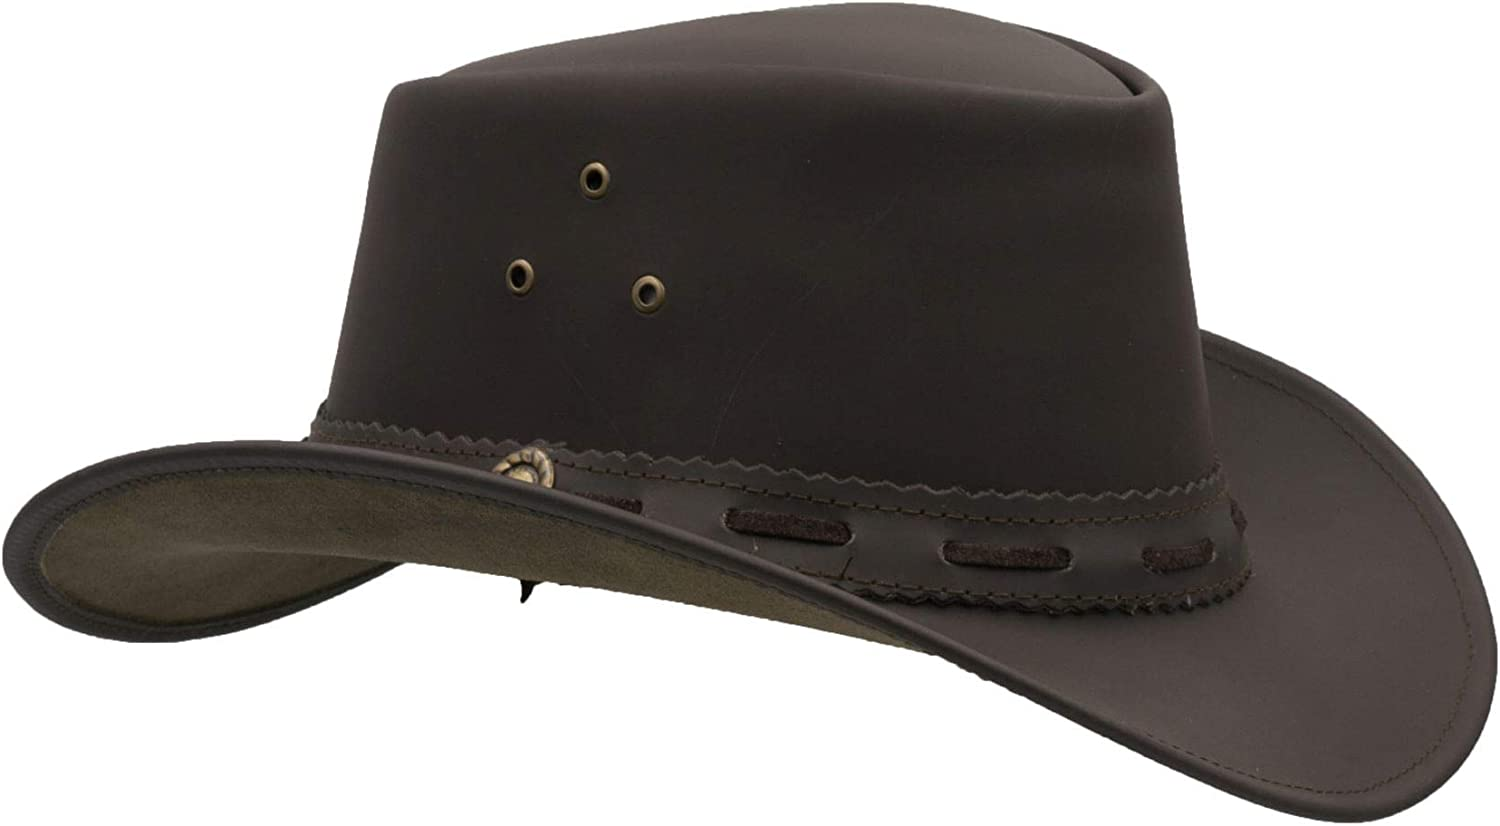 Walker and Hawkes - Leather Cowhide Sales for sale Popularity Outback Hat Waterproof